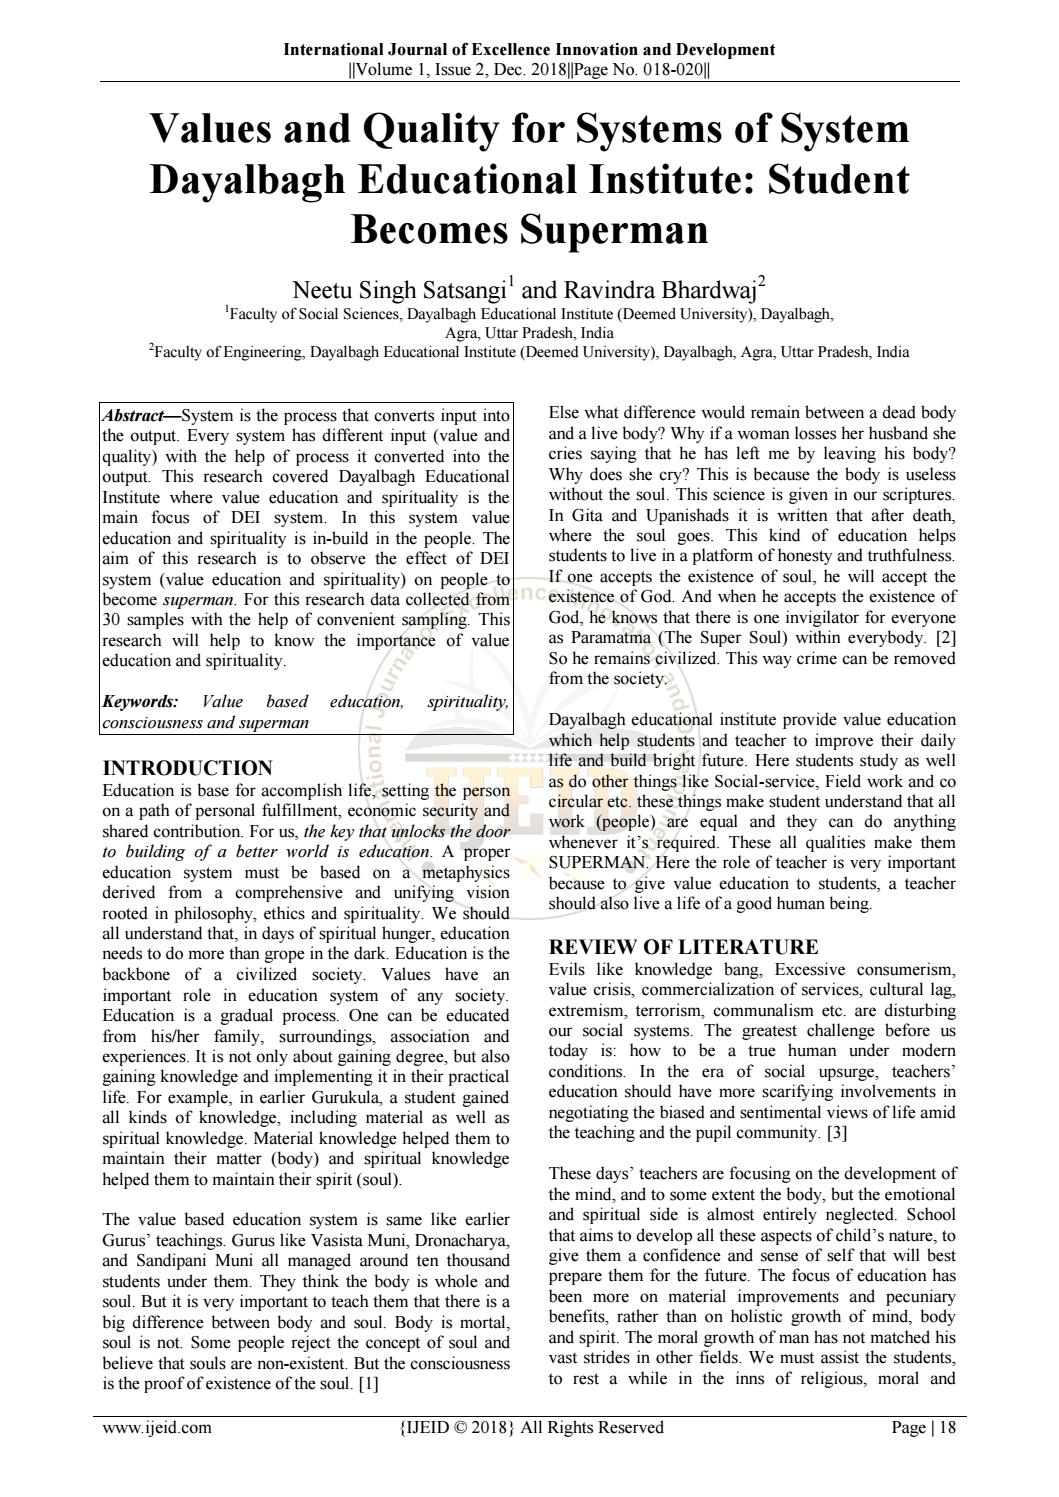 Values And Quality For Systems Of System Dayalbagh Educational Institute Student Becomes Superman By Ijeid Issuu